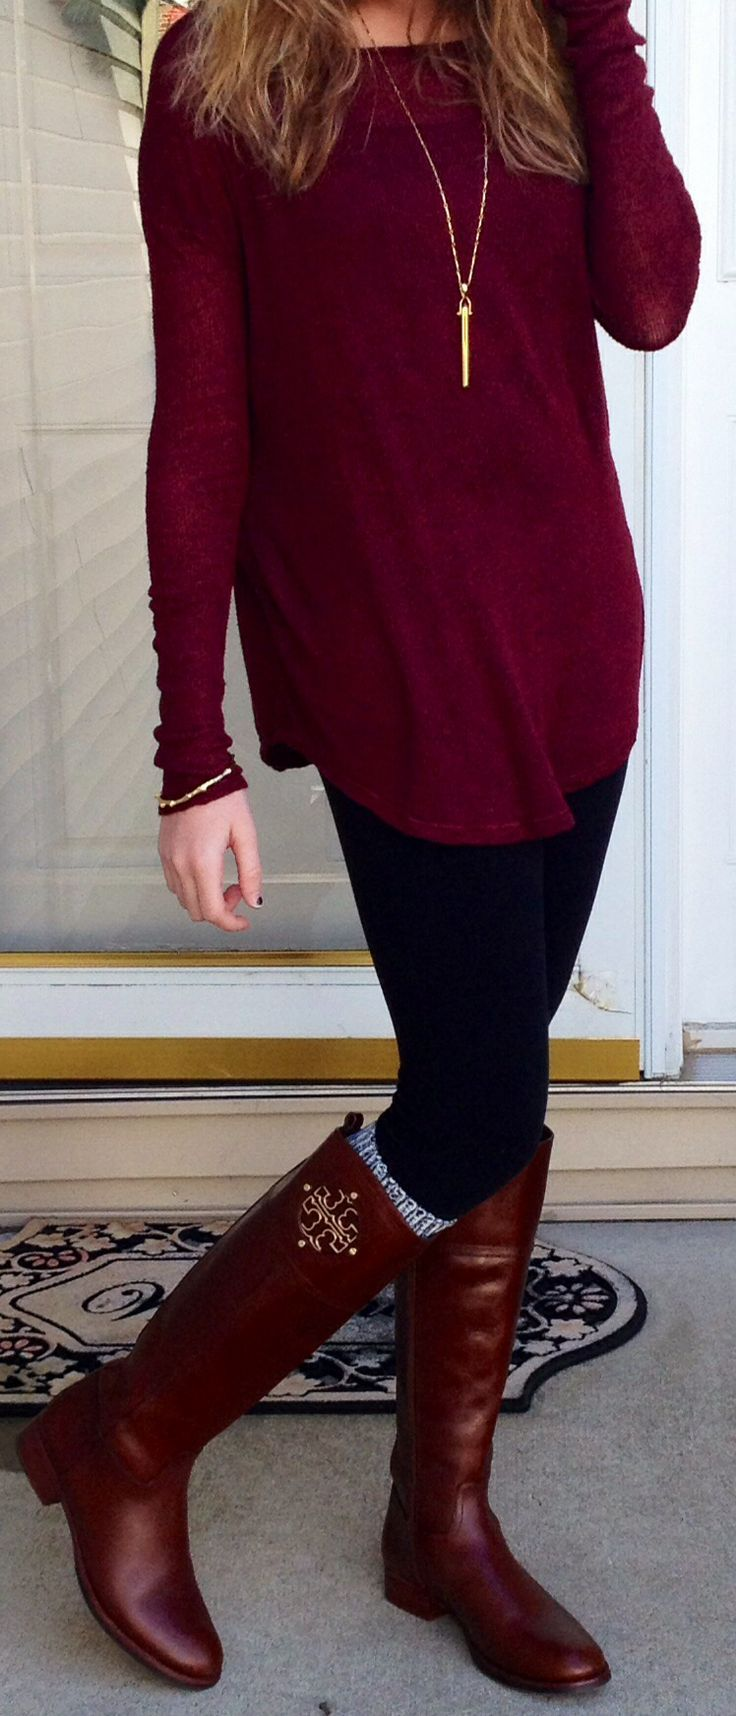 Winter colors - So in love with these boots - Style/color